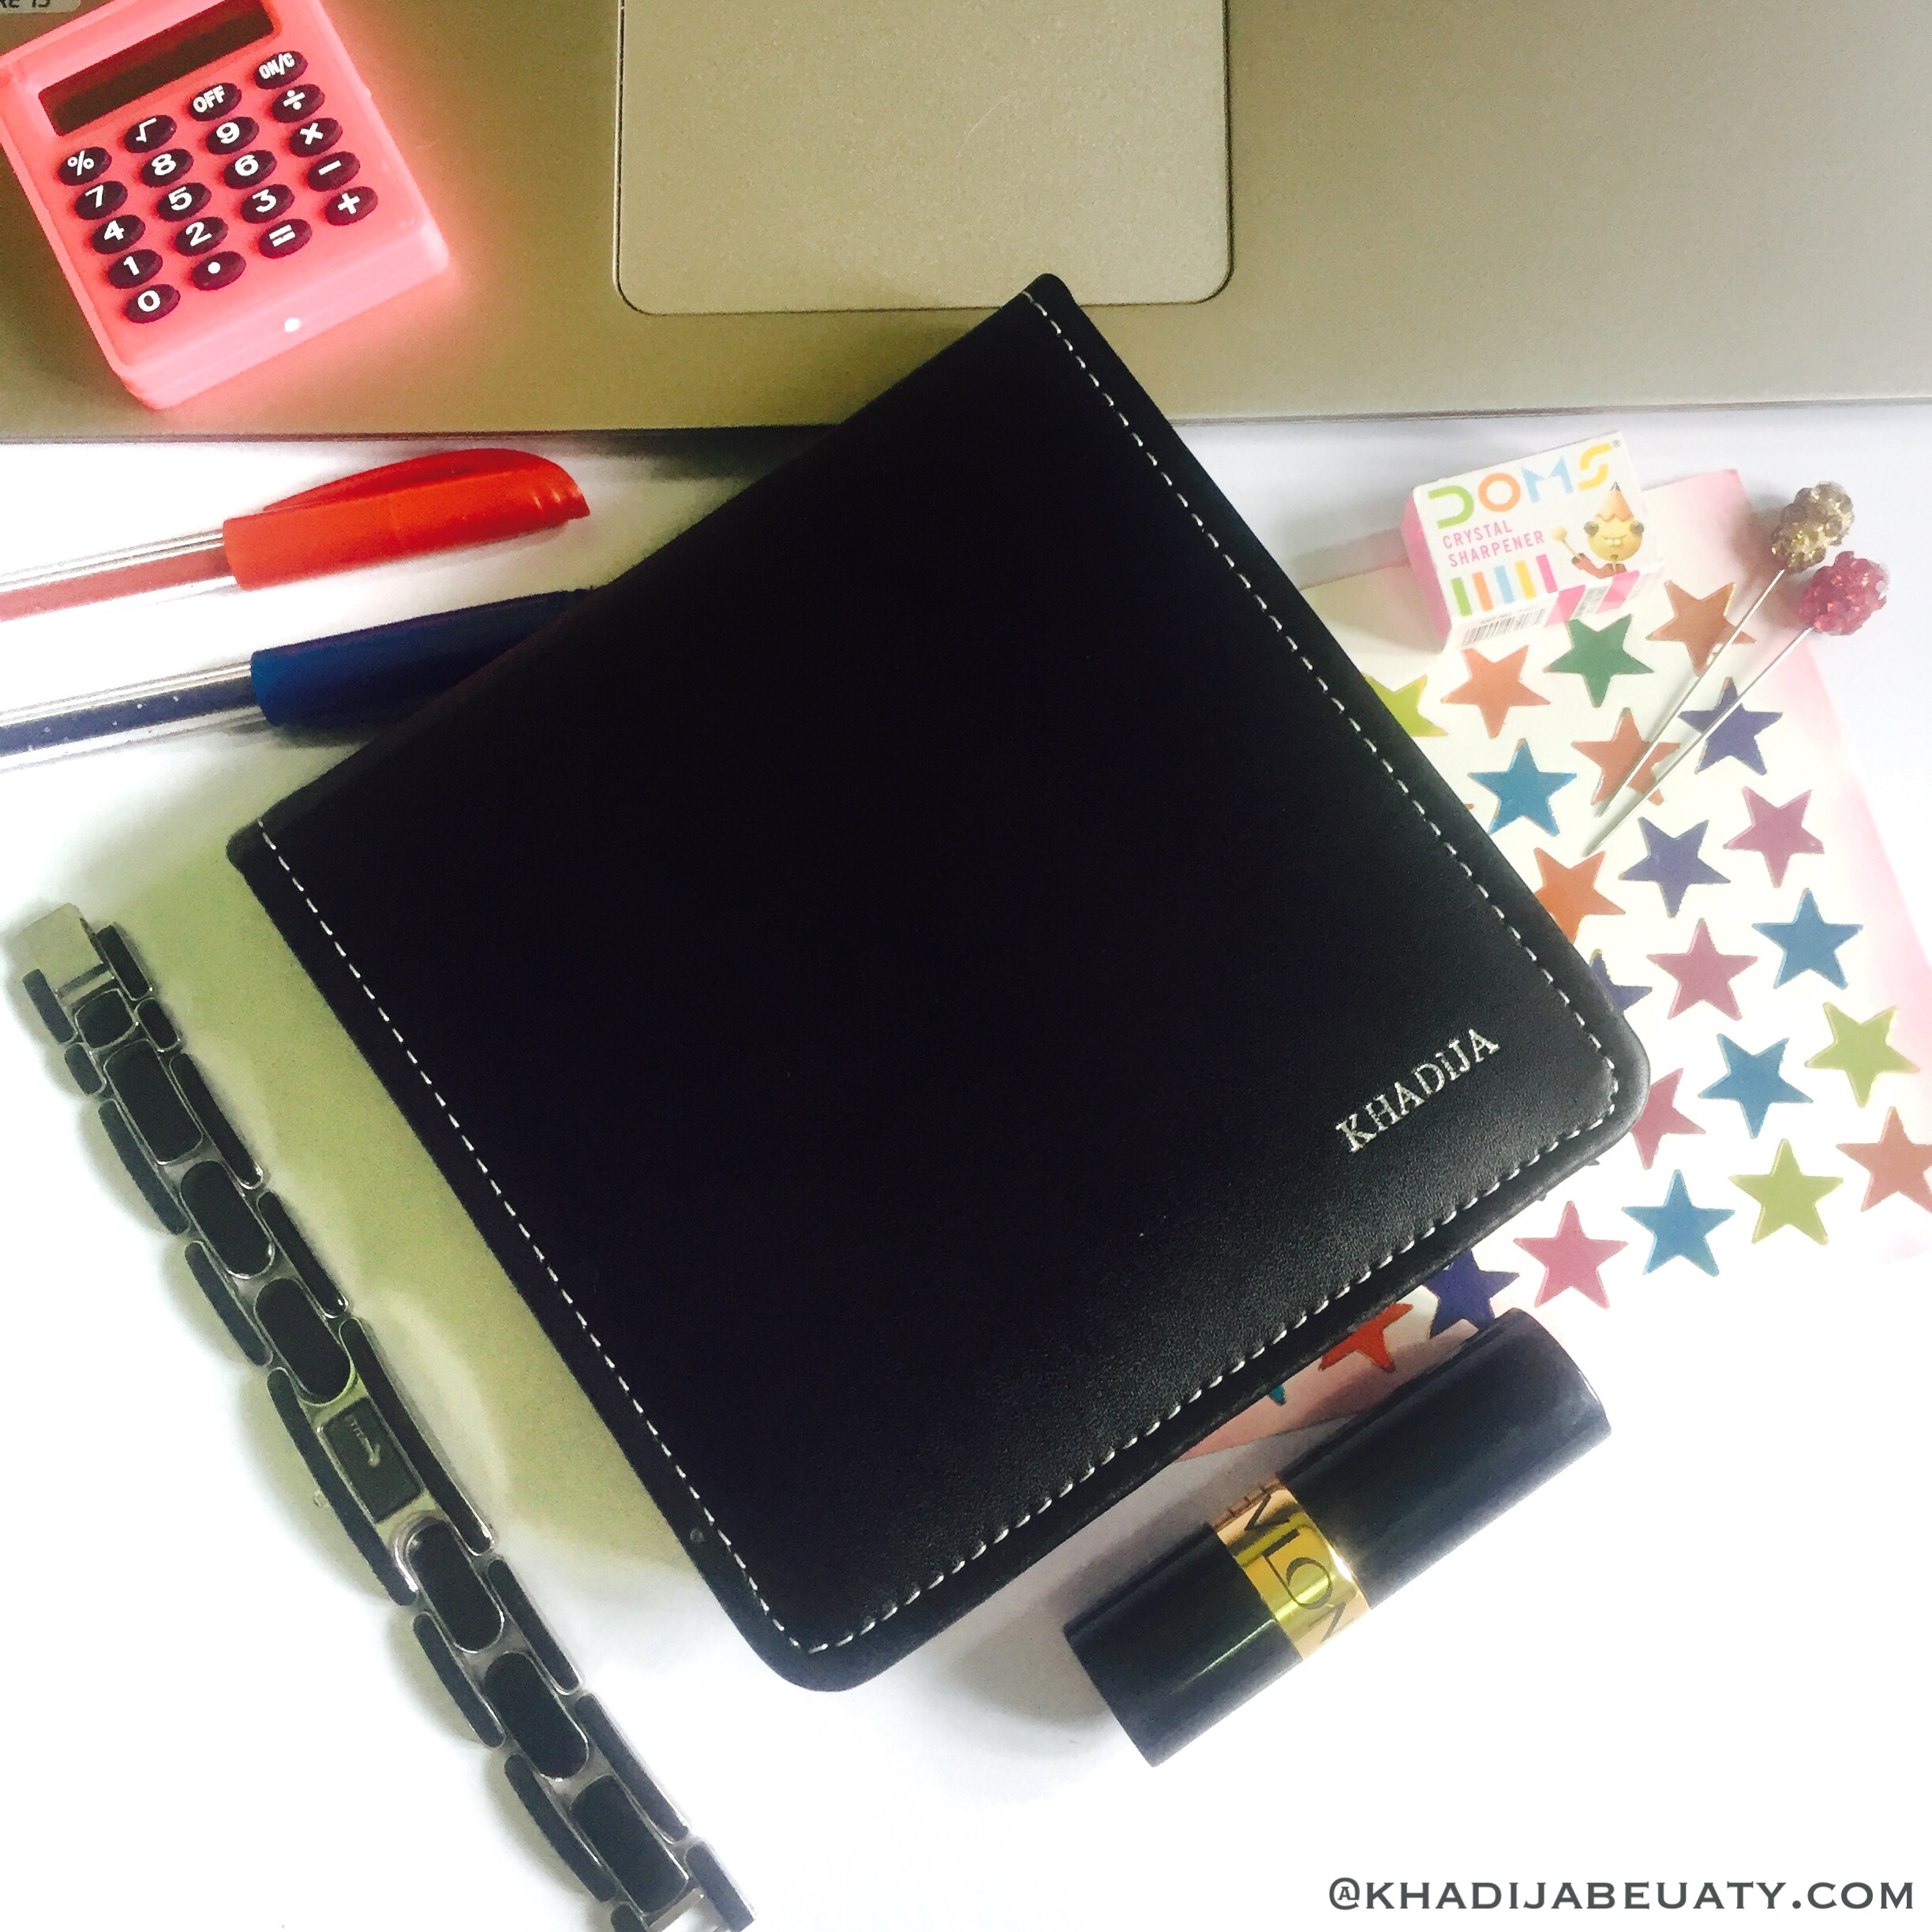 Butterly yours Bhasad Planner Review| Get organized with this cool planner